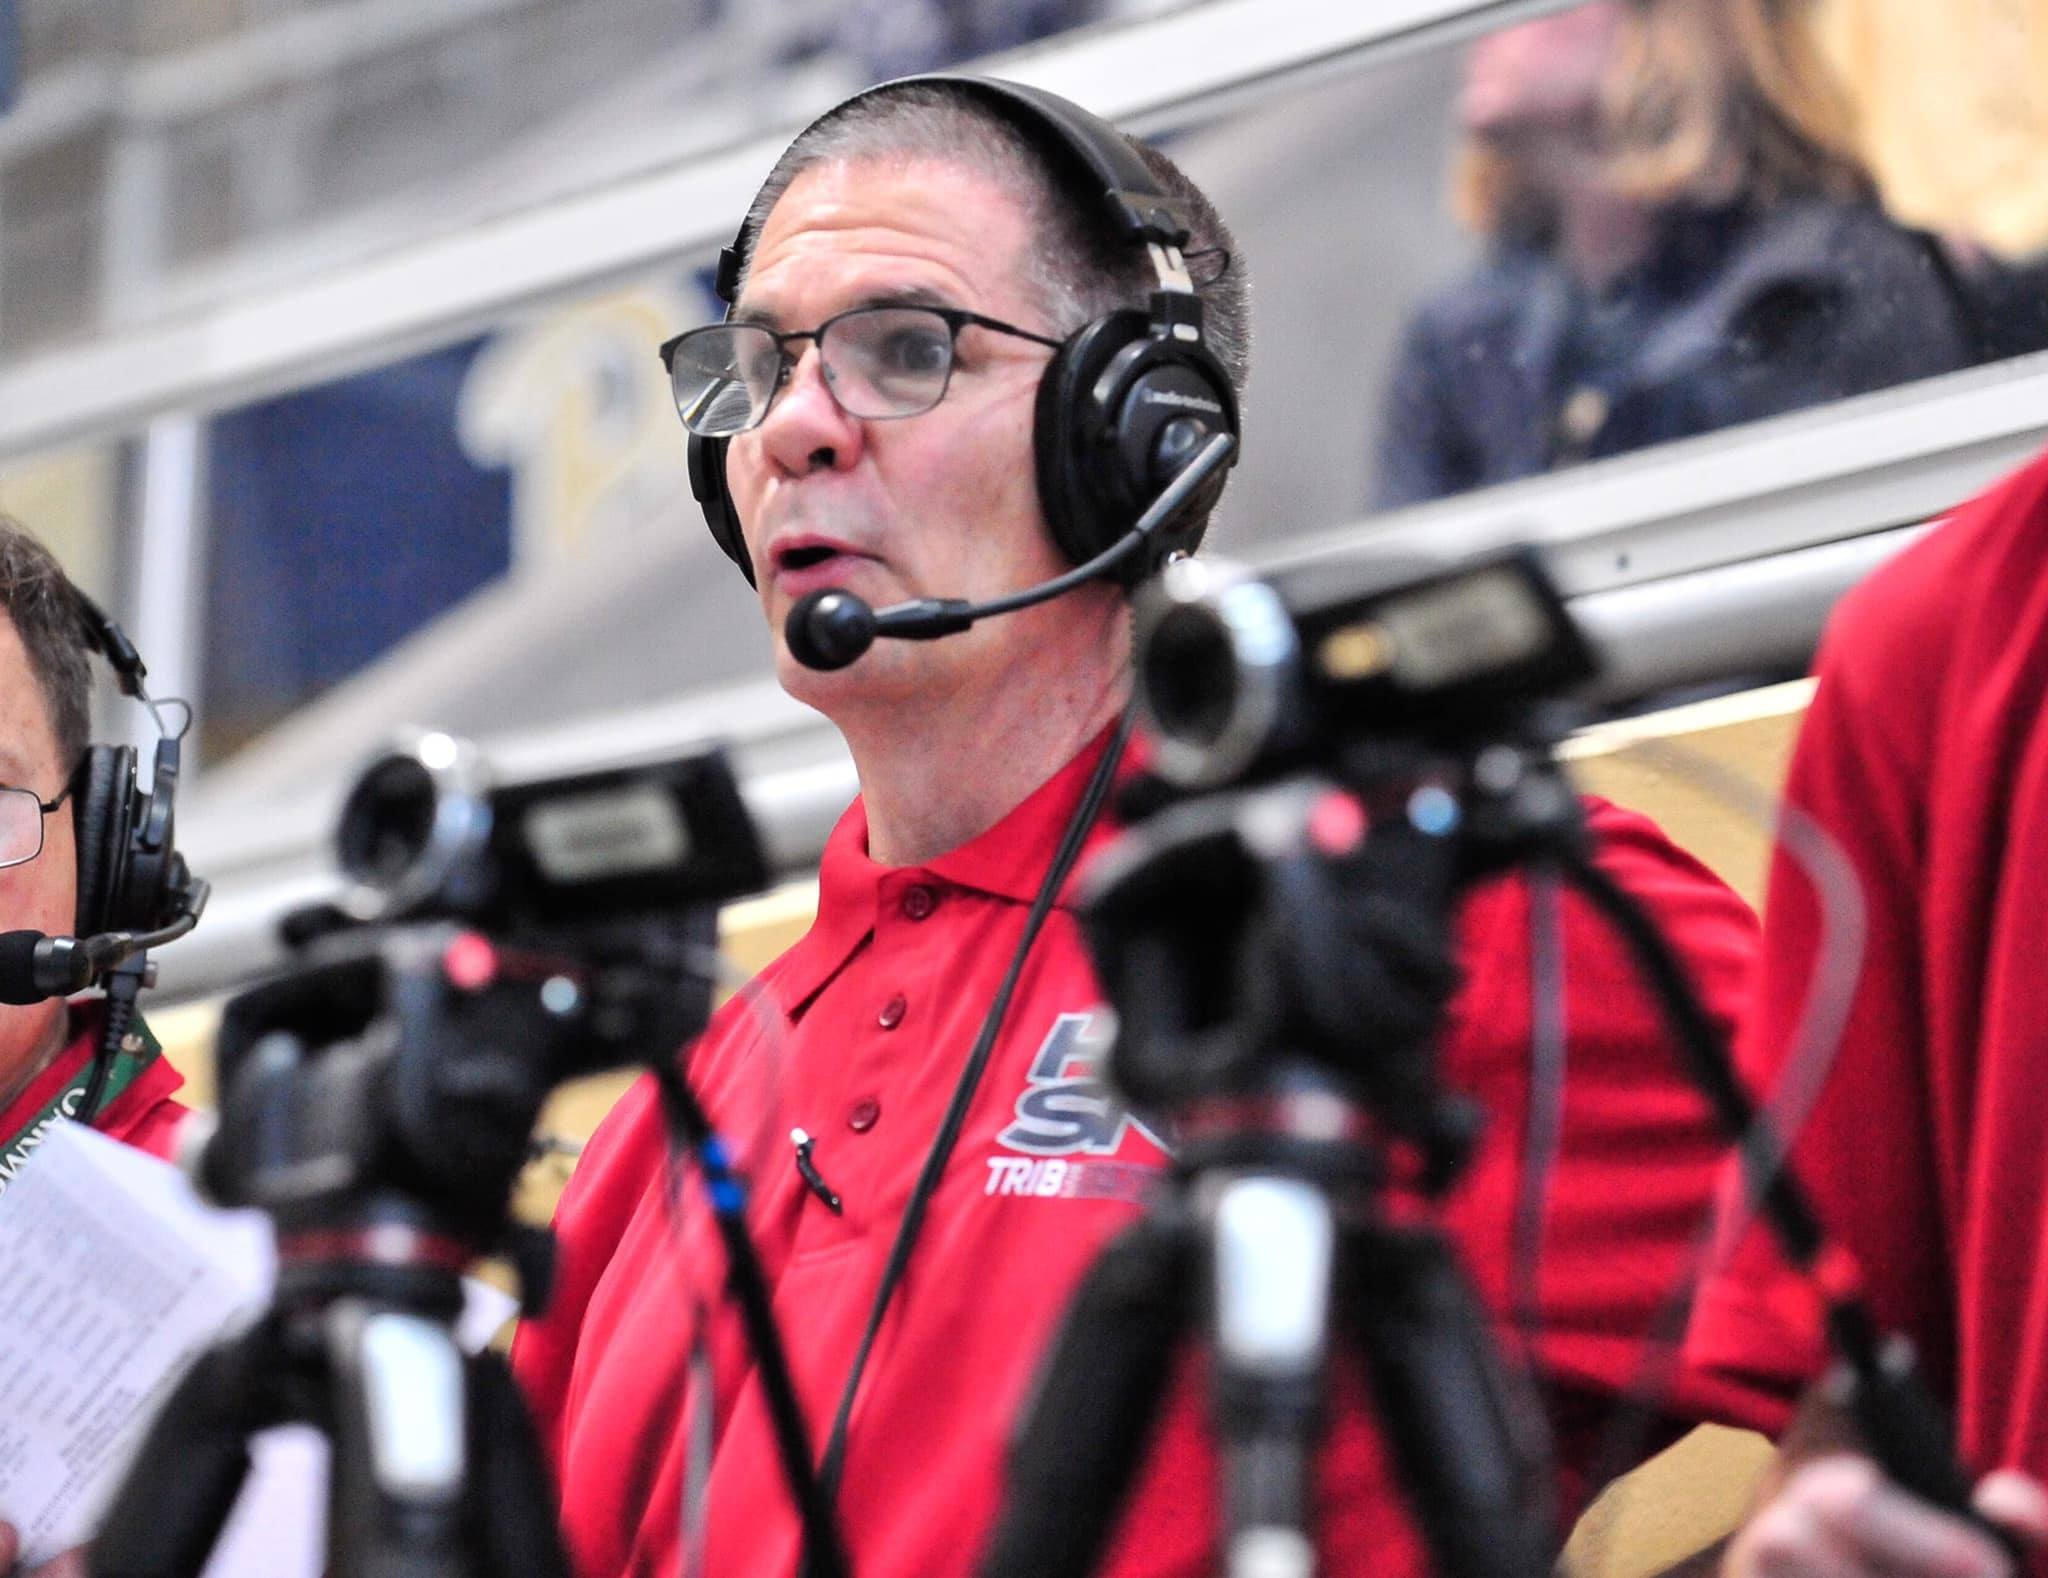 Mark Rauterkus, color commentator with the swim coverage for the TribLIVE High School Sports Network.